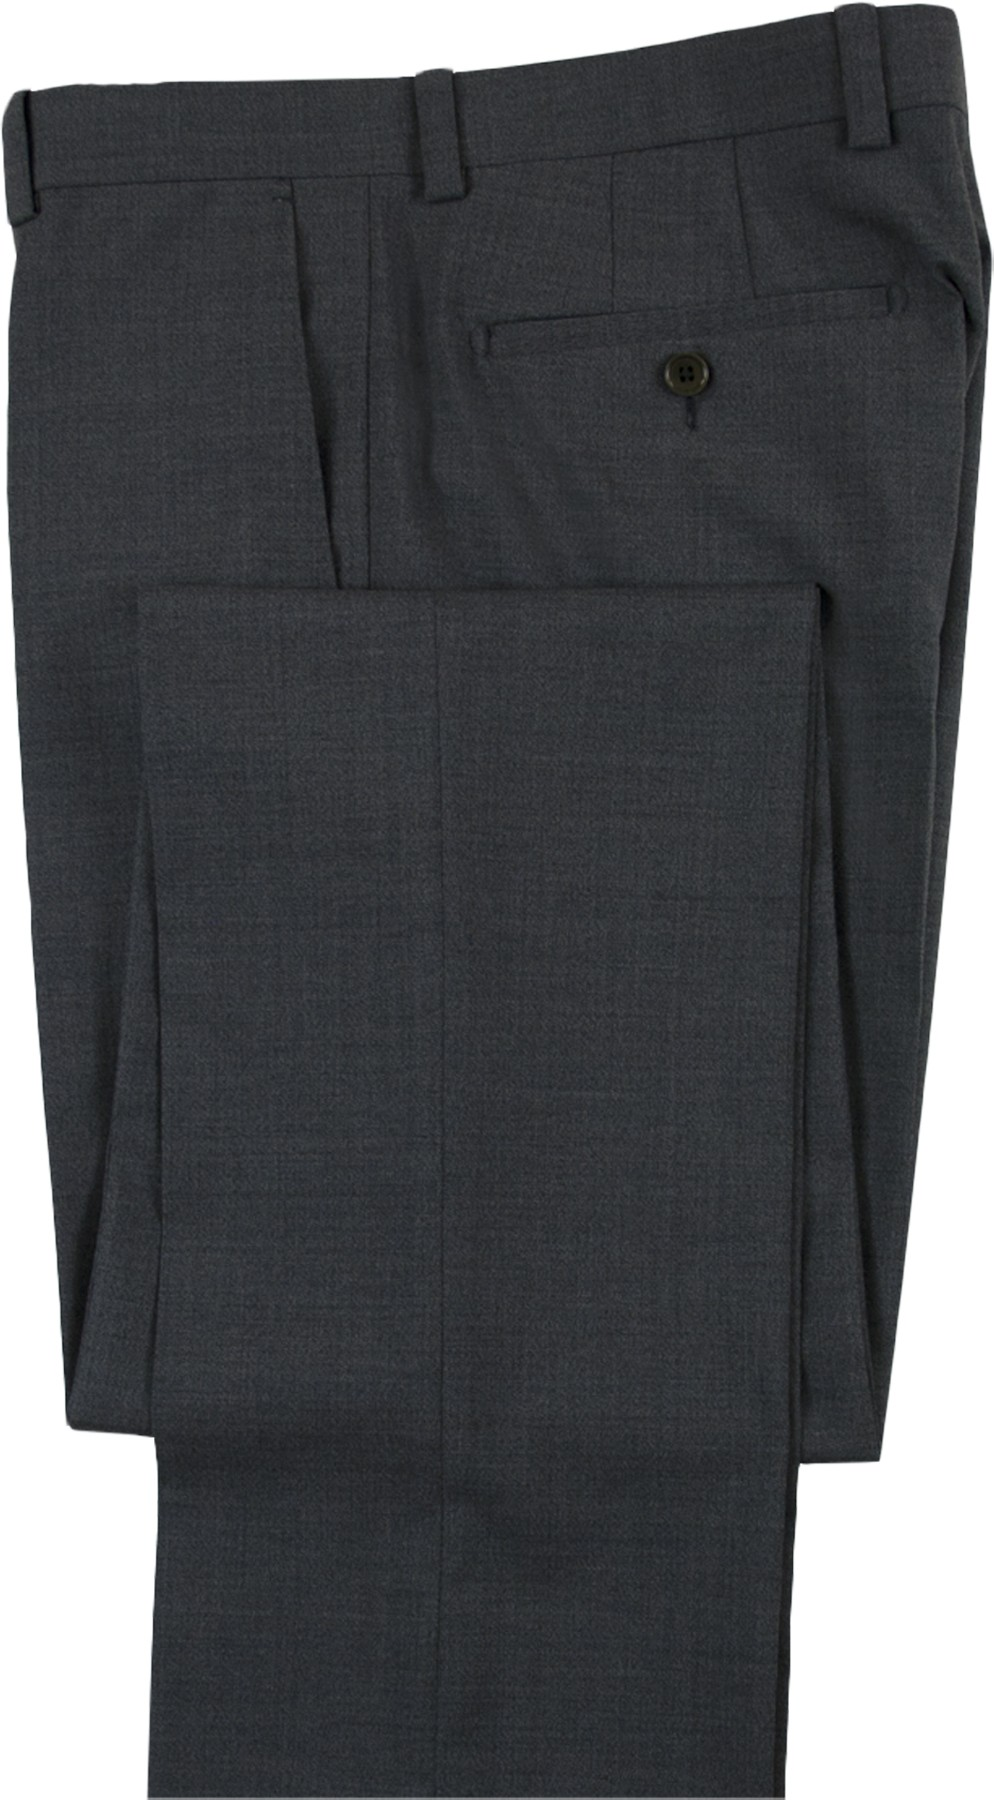 "Aristo 18 ""Stirling"" Flat Front Trouser - Performance Wool Solids"